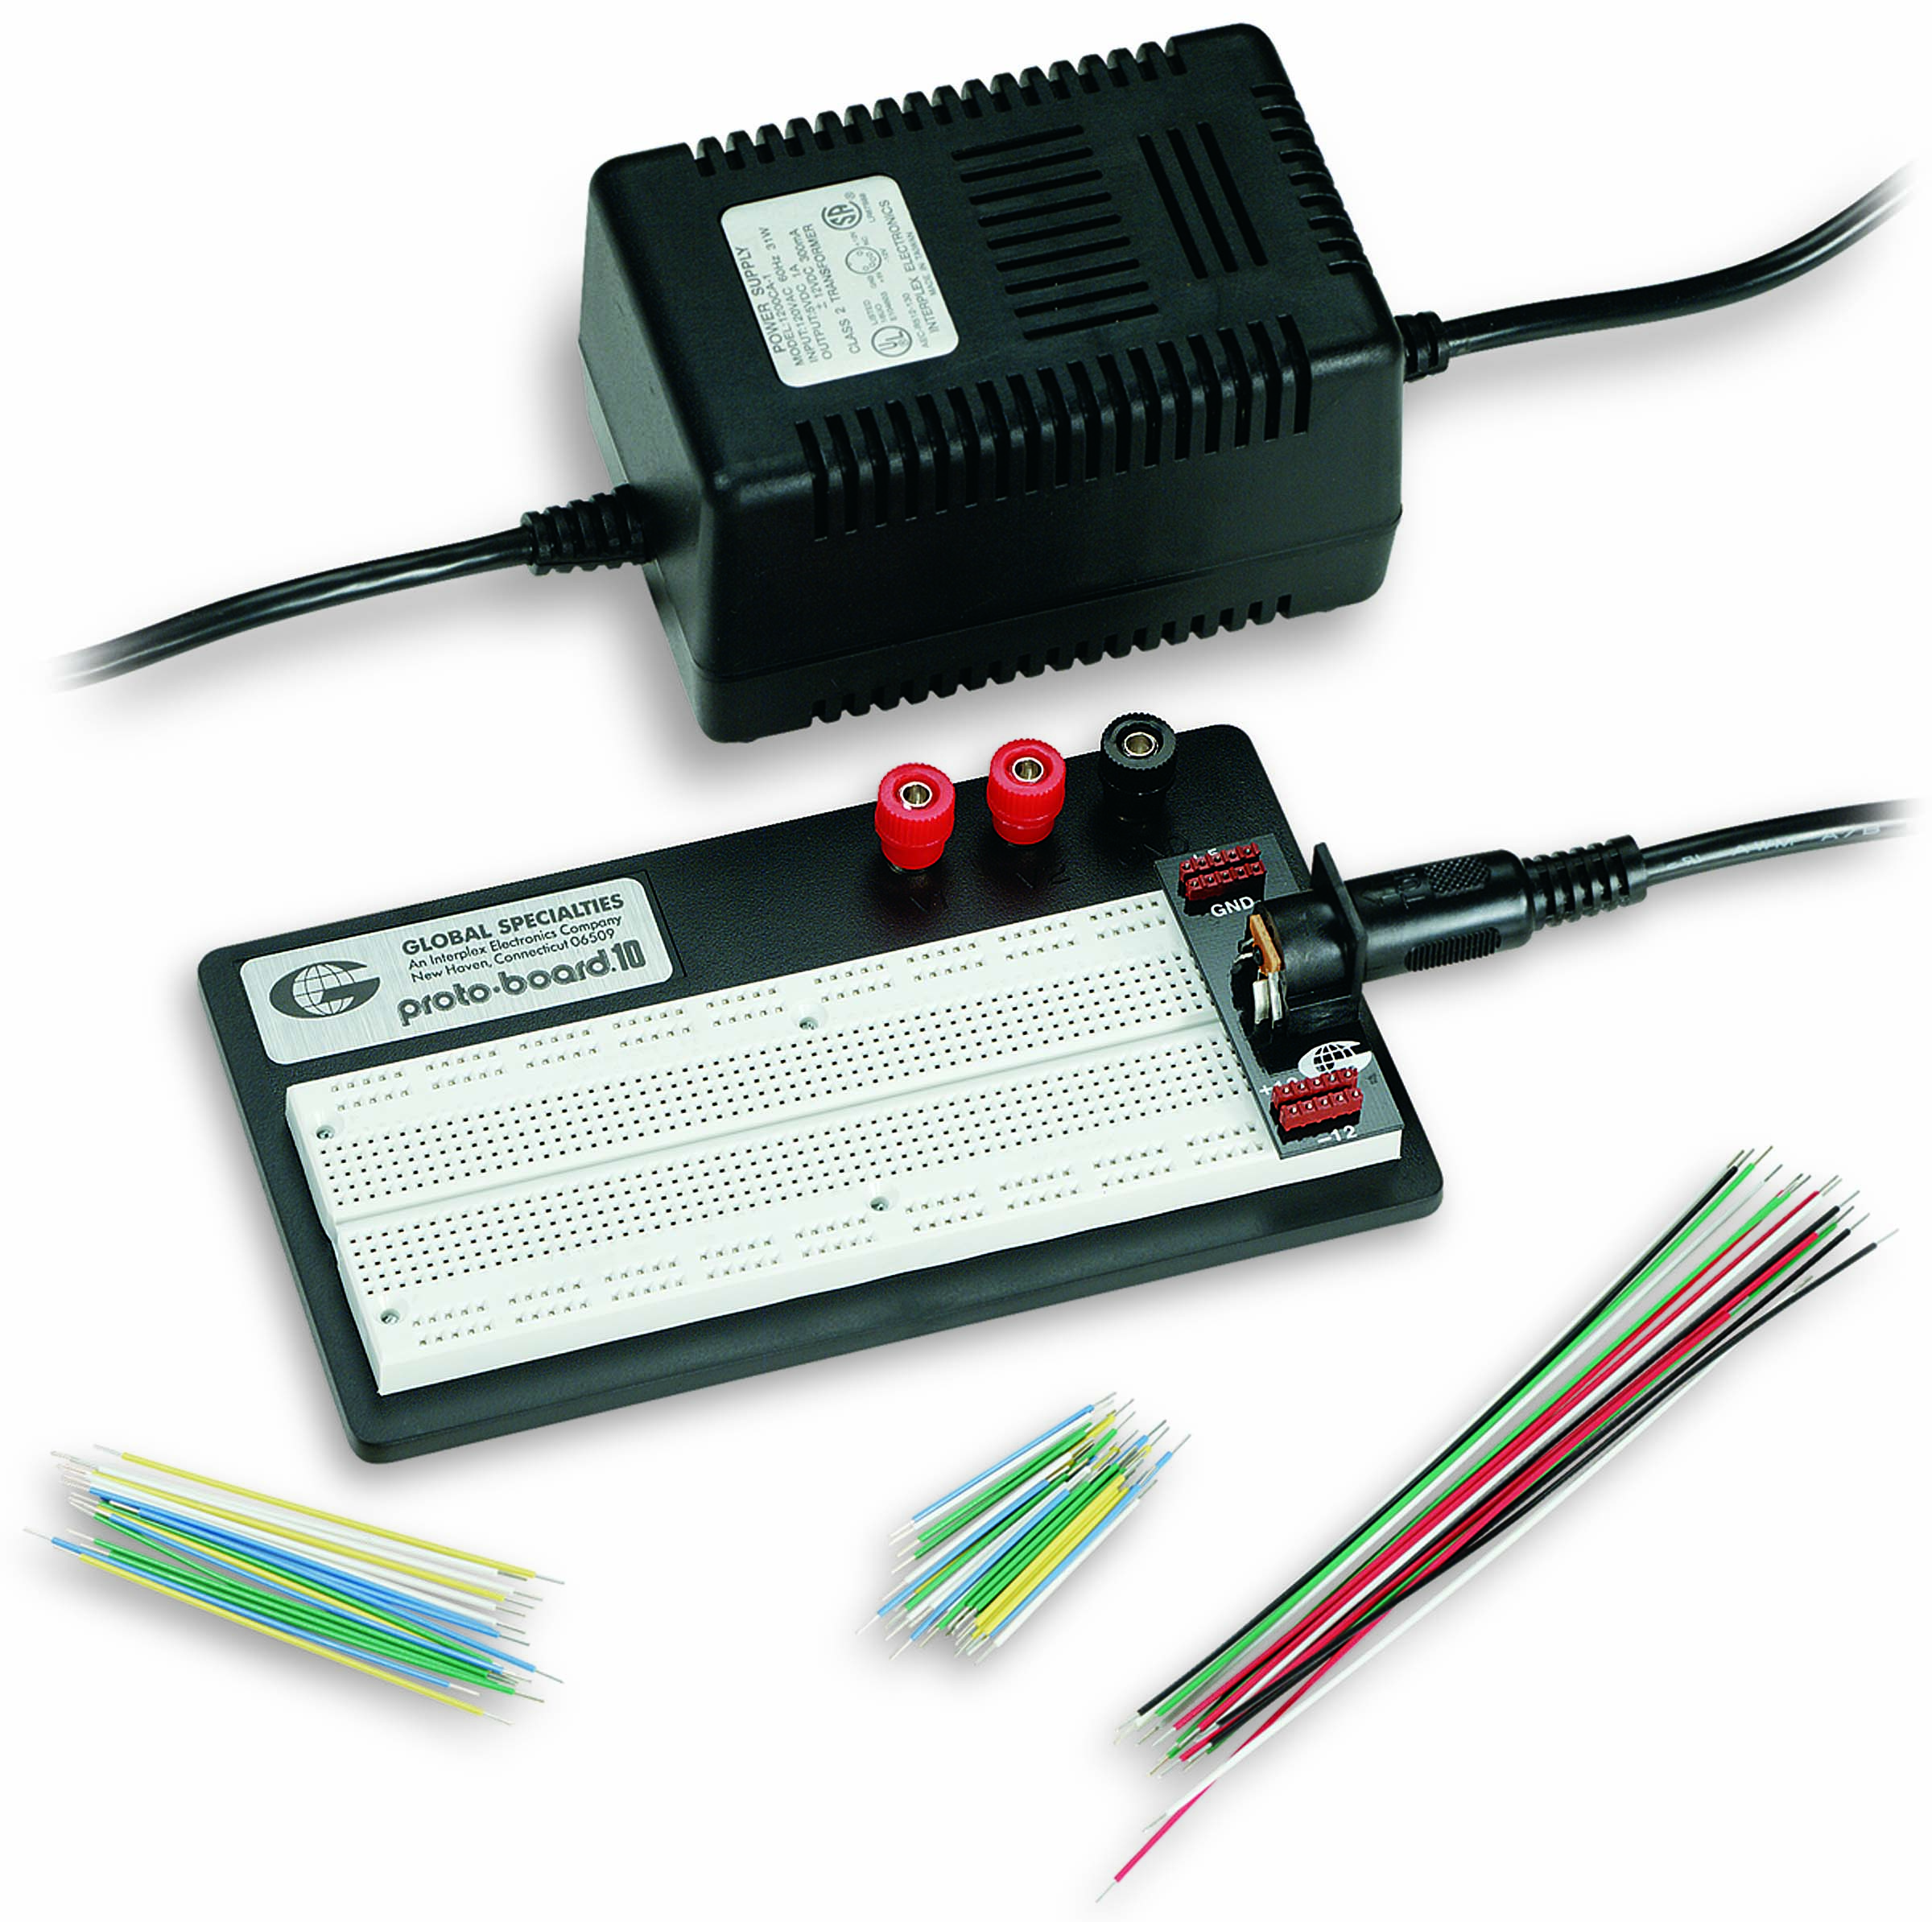 Global Specialties PRO-S-LAB Breadboard with Power Adapter & Jumper Wires